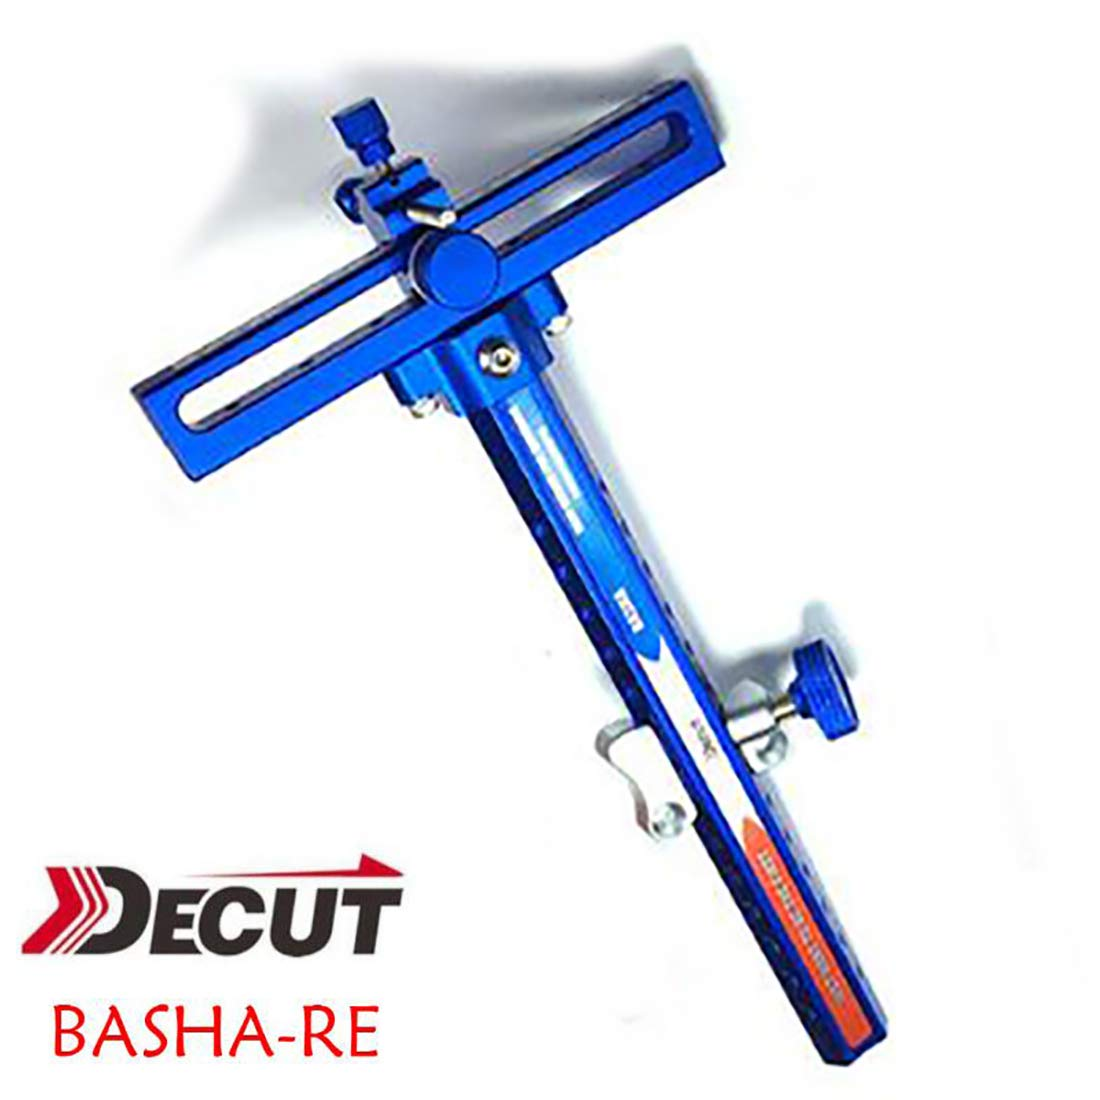 DECUT 1 pin Recurve Bow Sight Aluminum Alloy Basha Bow Sight Bow Aim Point Competition Athletic Long Arm Fine-Tuning Sighting